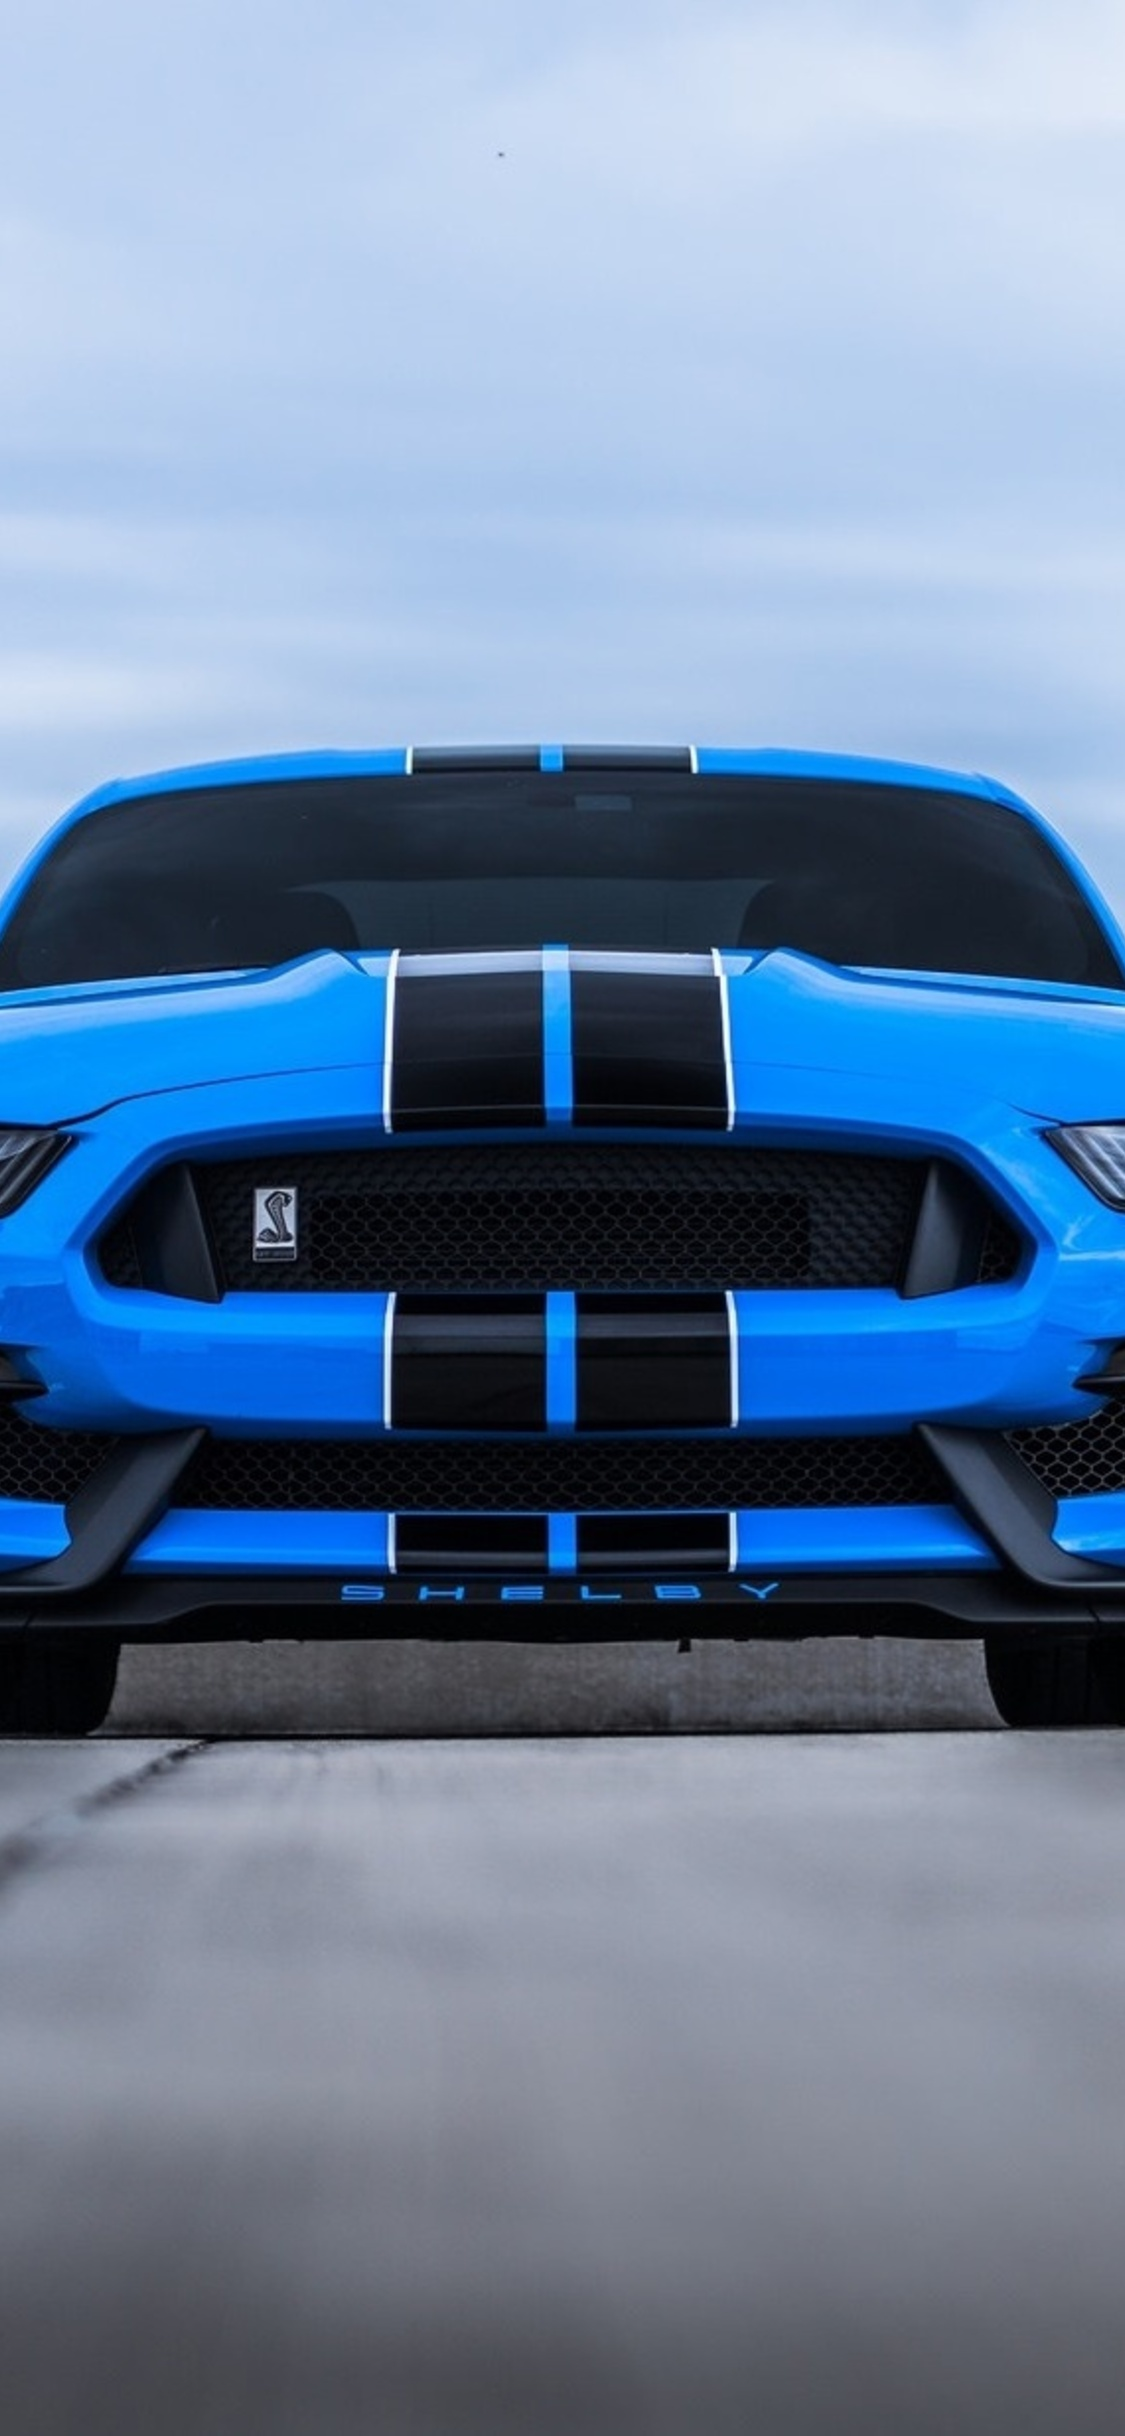 1125x2436 Ford Mustang Shelby Muscle Car Iphone Xs Iphone 10 Iphone